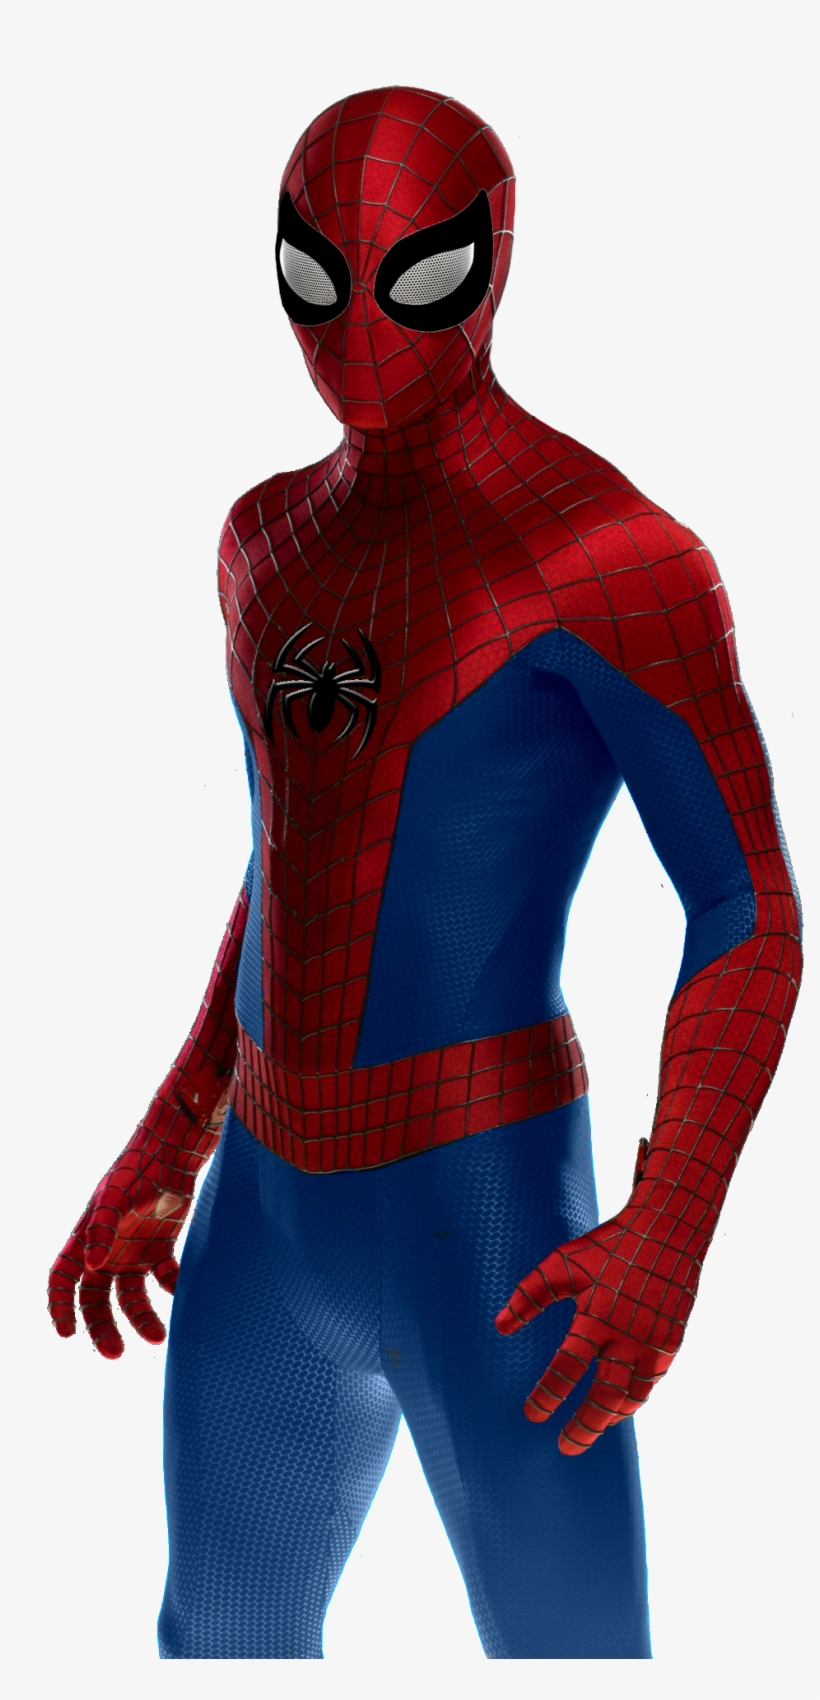 Png Download Amazing Spiderman Png Image.